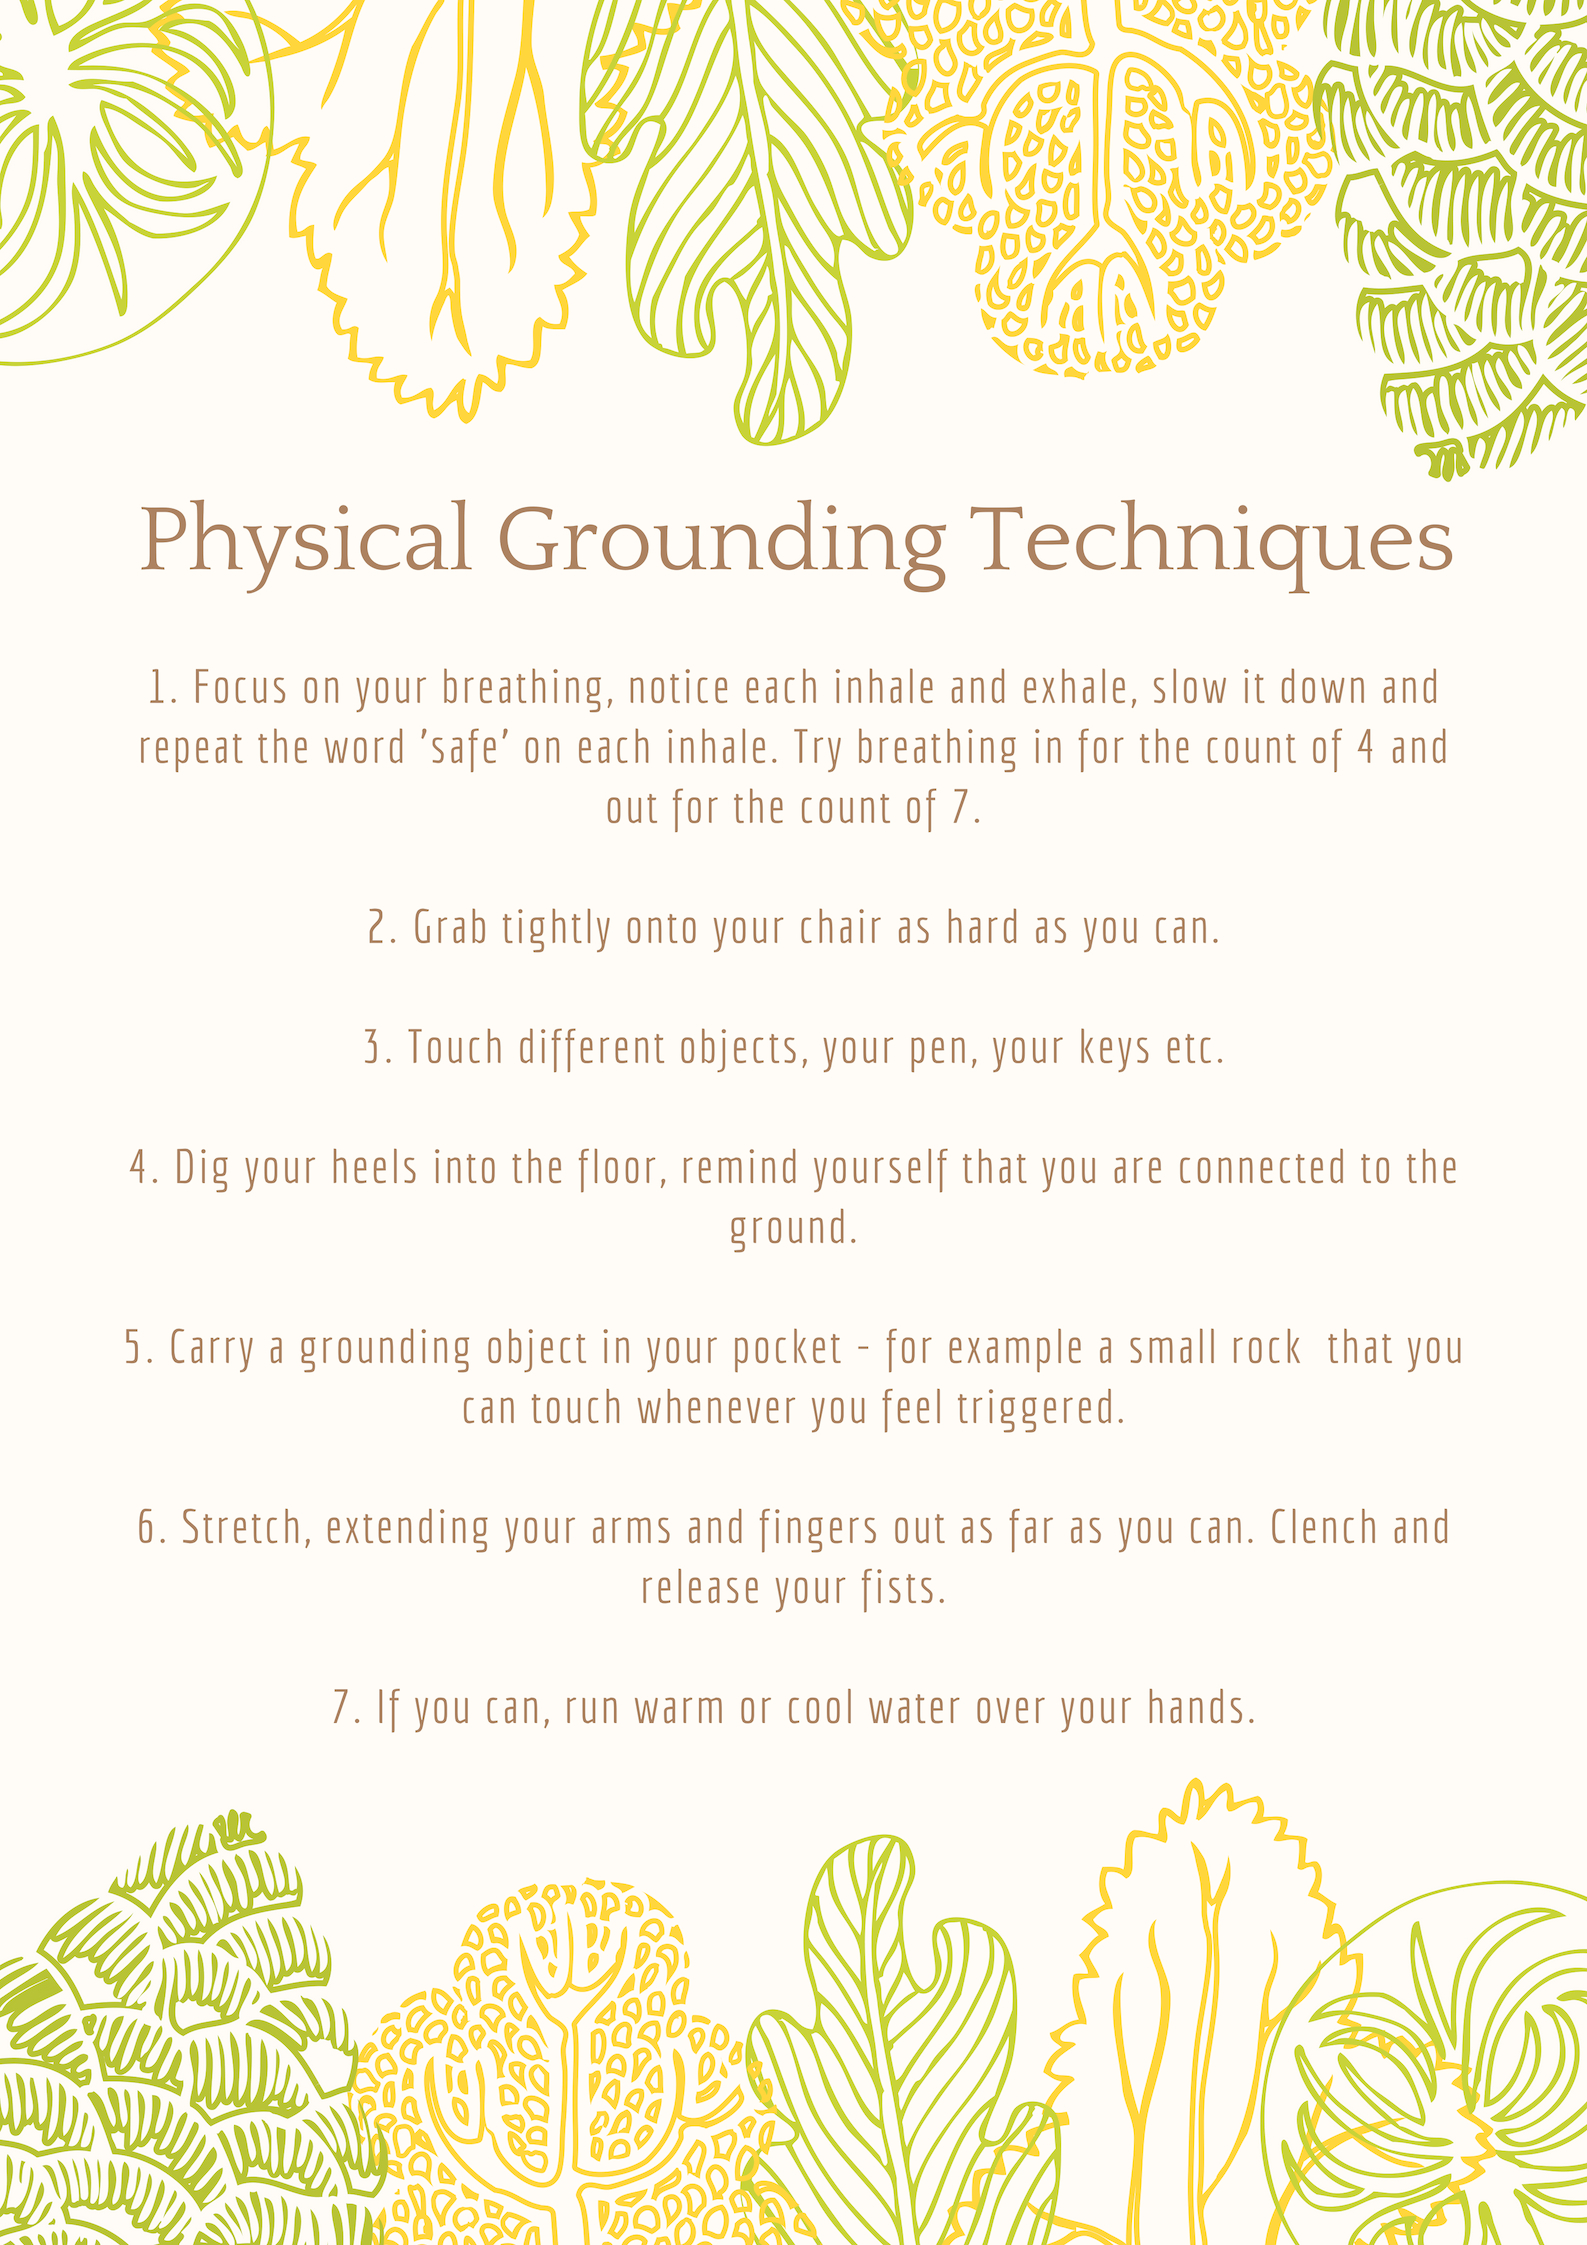 Physical Grounding Techniques Poster